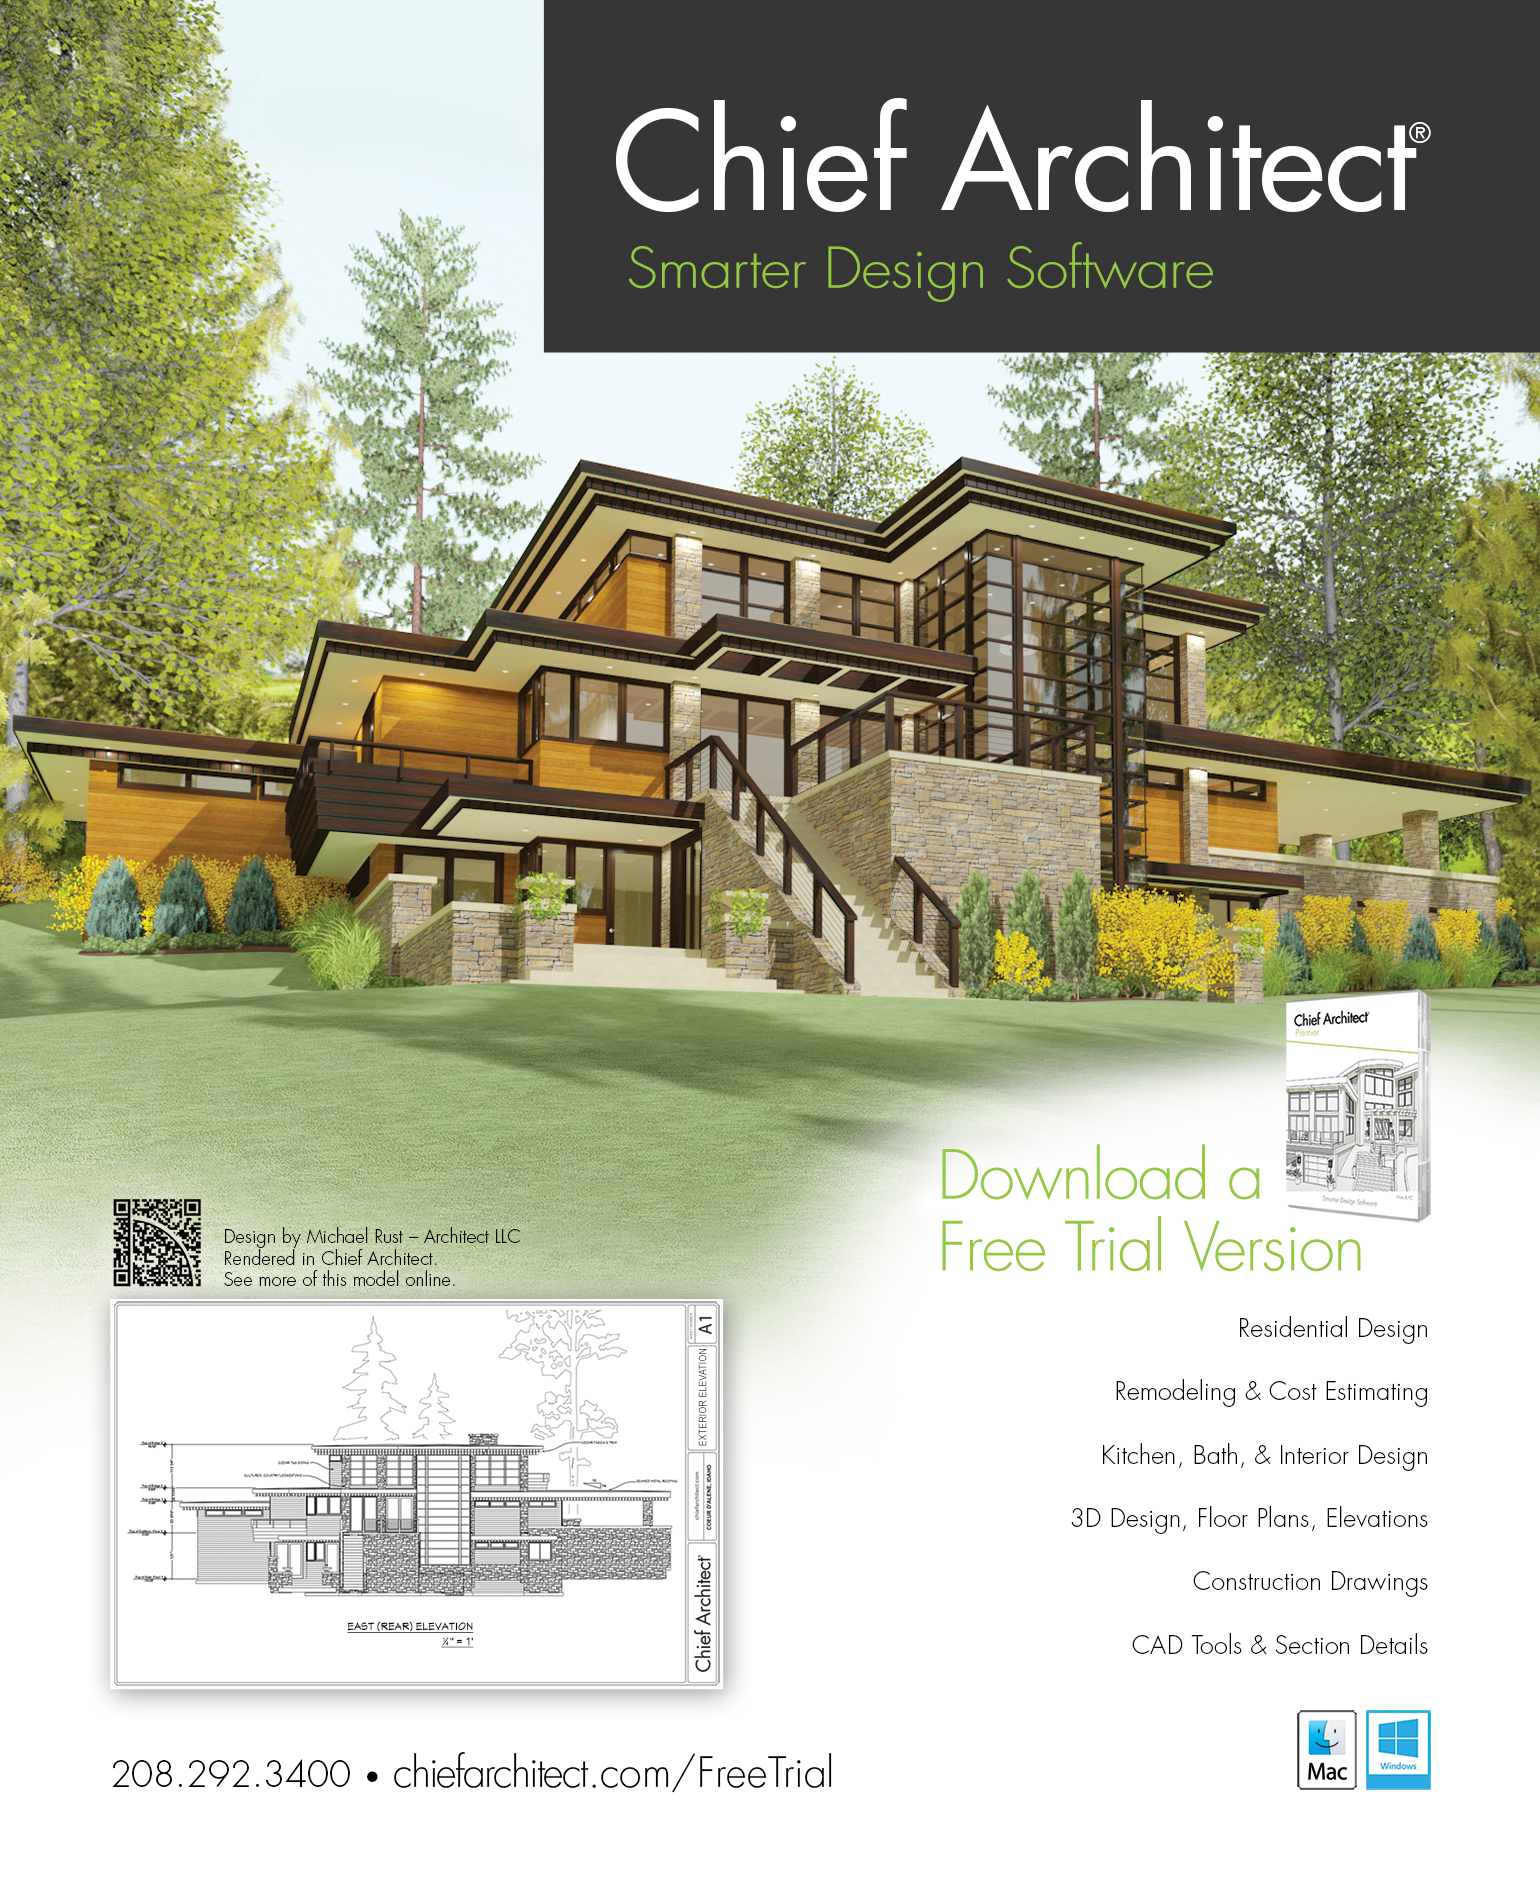 Best Kitchen Gallery: Chief Architect Home Design Software Ad of Home Design  Trial  on rachelxblog.com